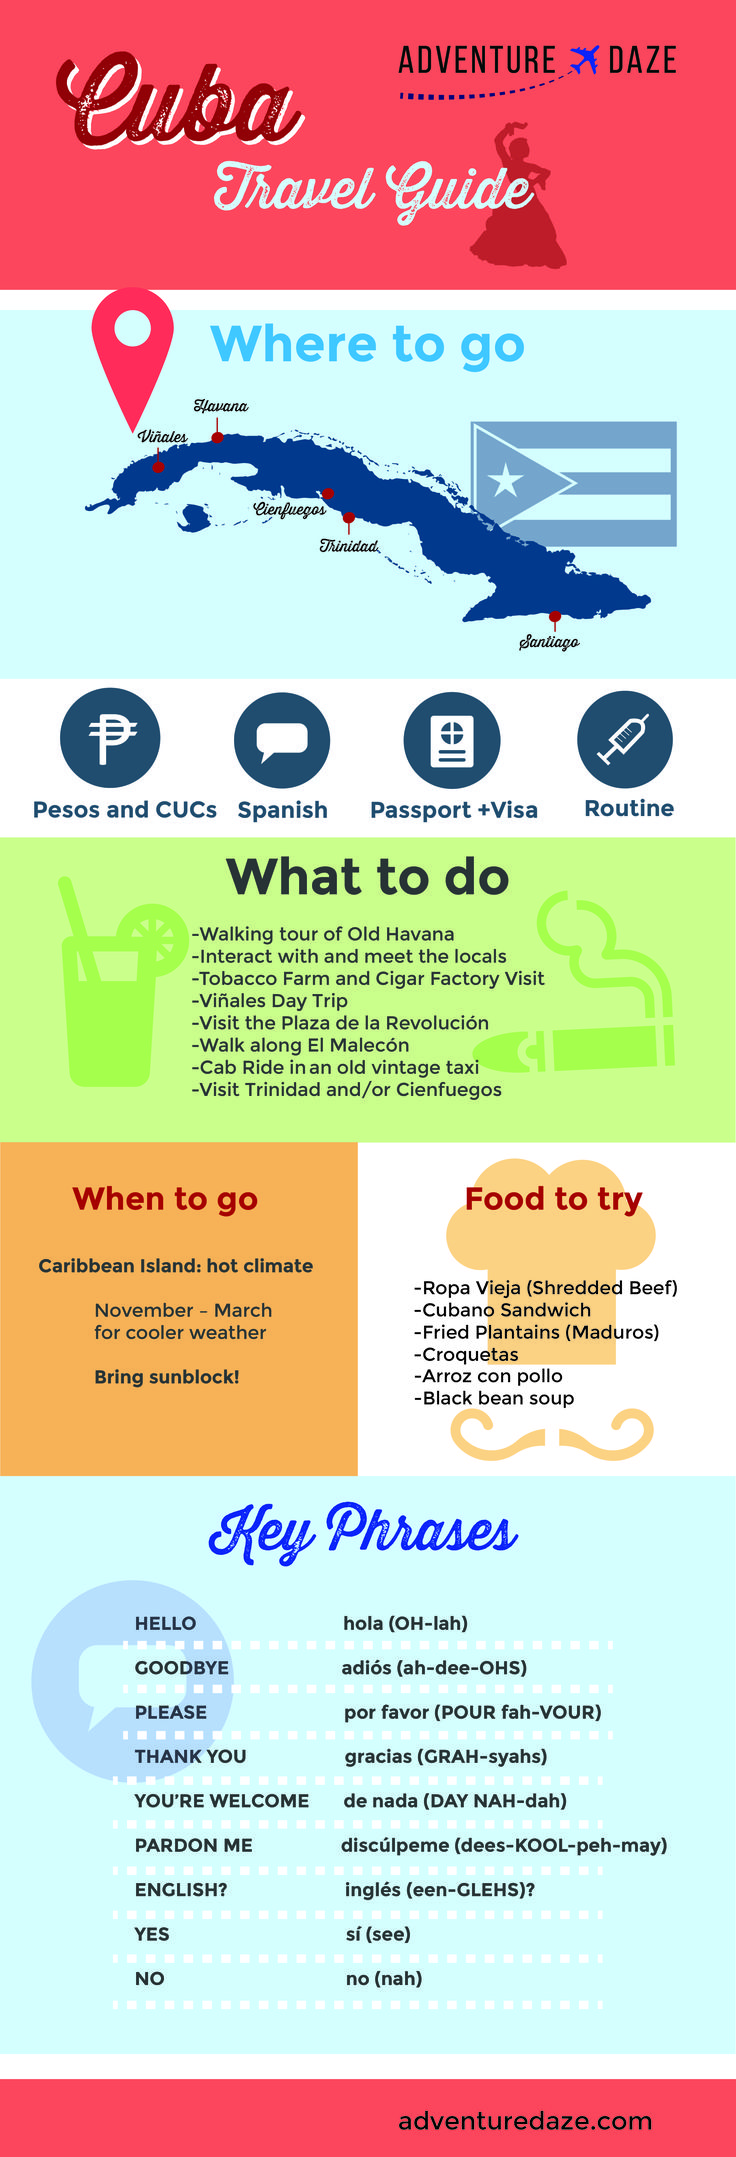 Traveling to Cuba? Check out this awesome AdventureDaze cheat sheet!